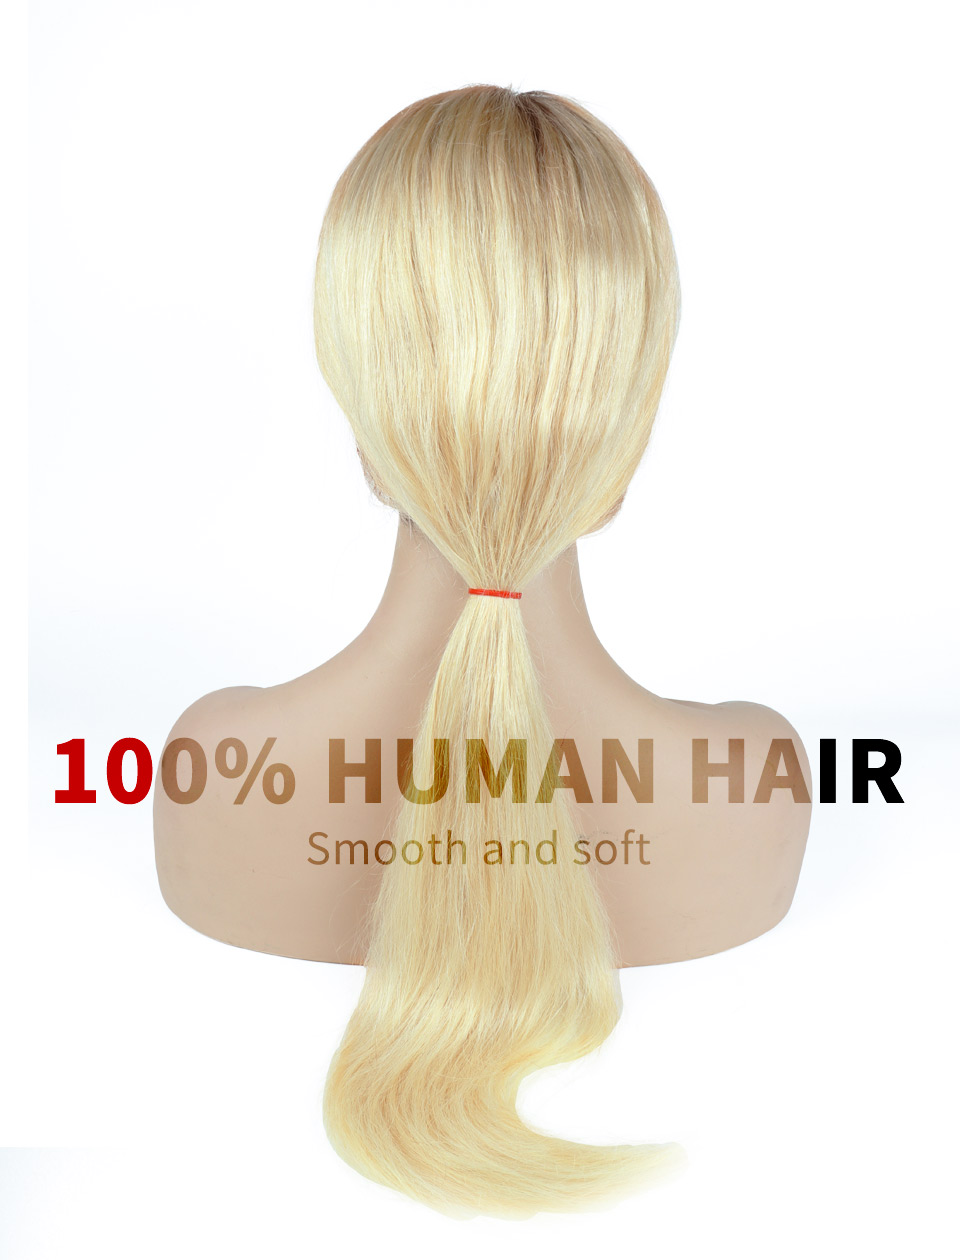 Preplucked Bleach Knot Lace Wigs Silky Straight 100% Human Hair Hair Online Ombre Blonde Hair 1b 613 Full Lace Wig